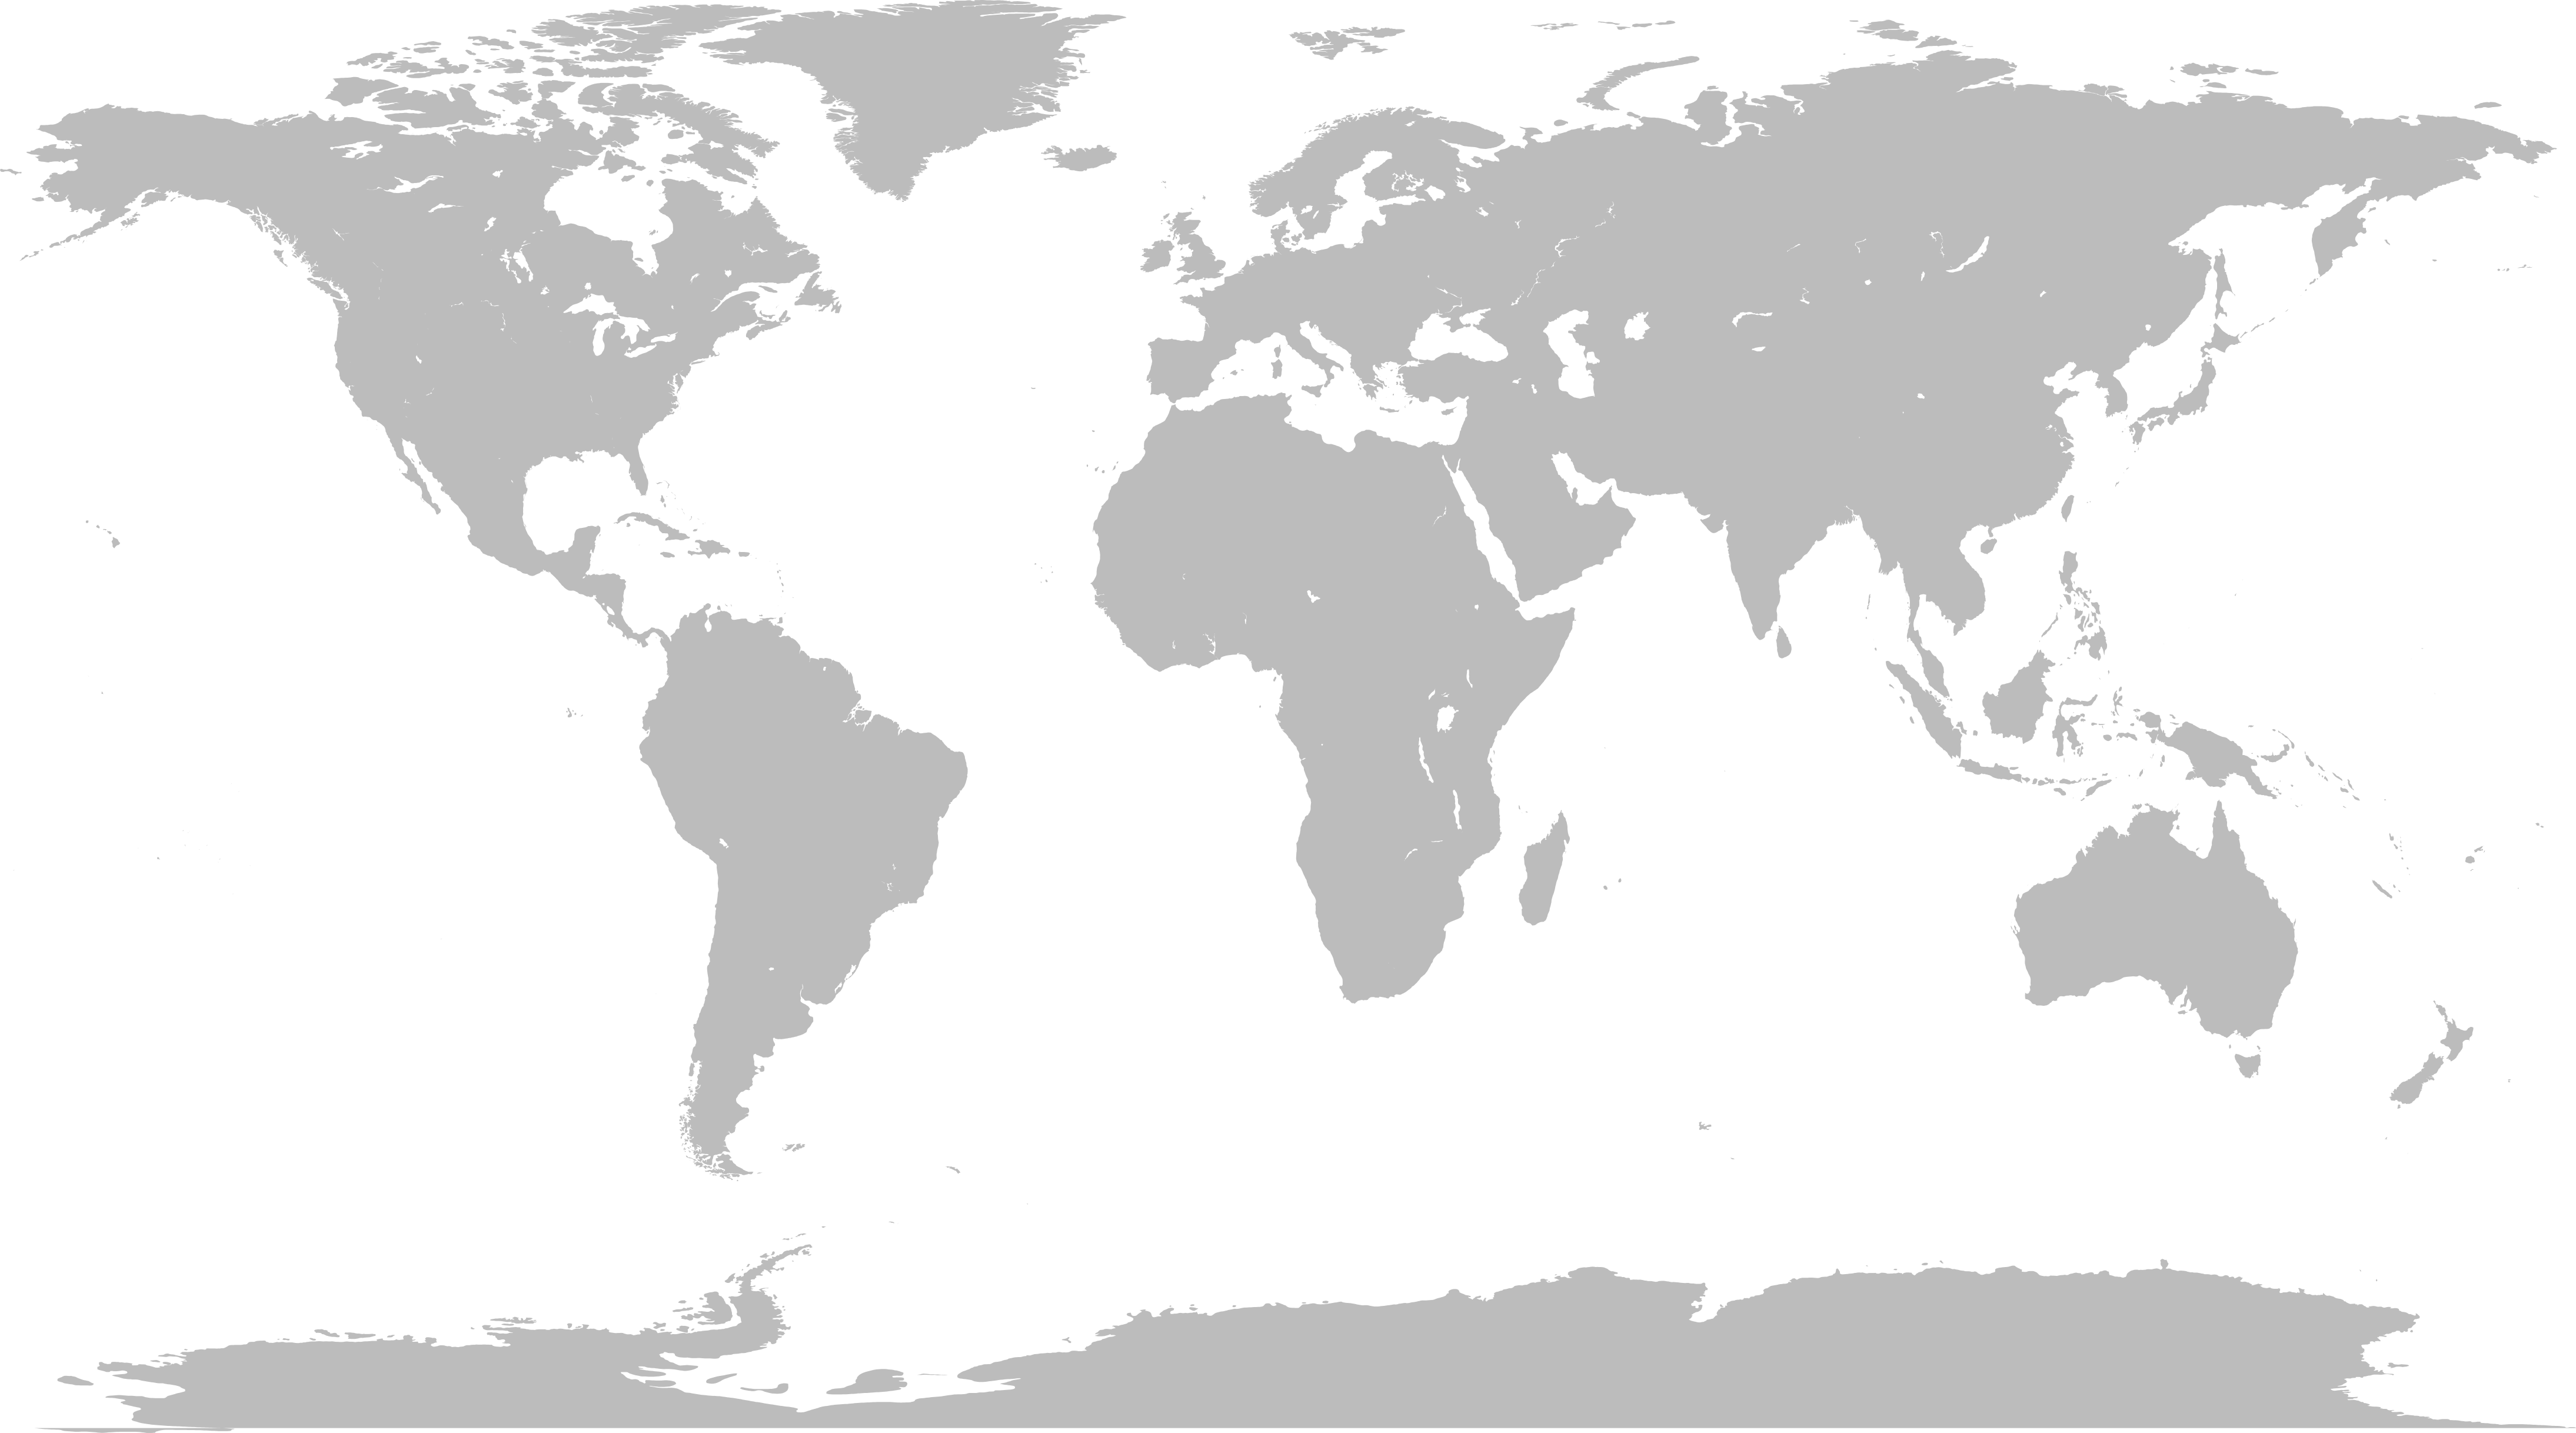 World map png image. File blank without borders